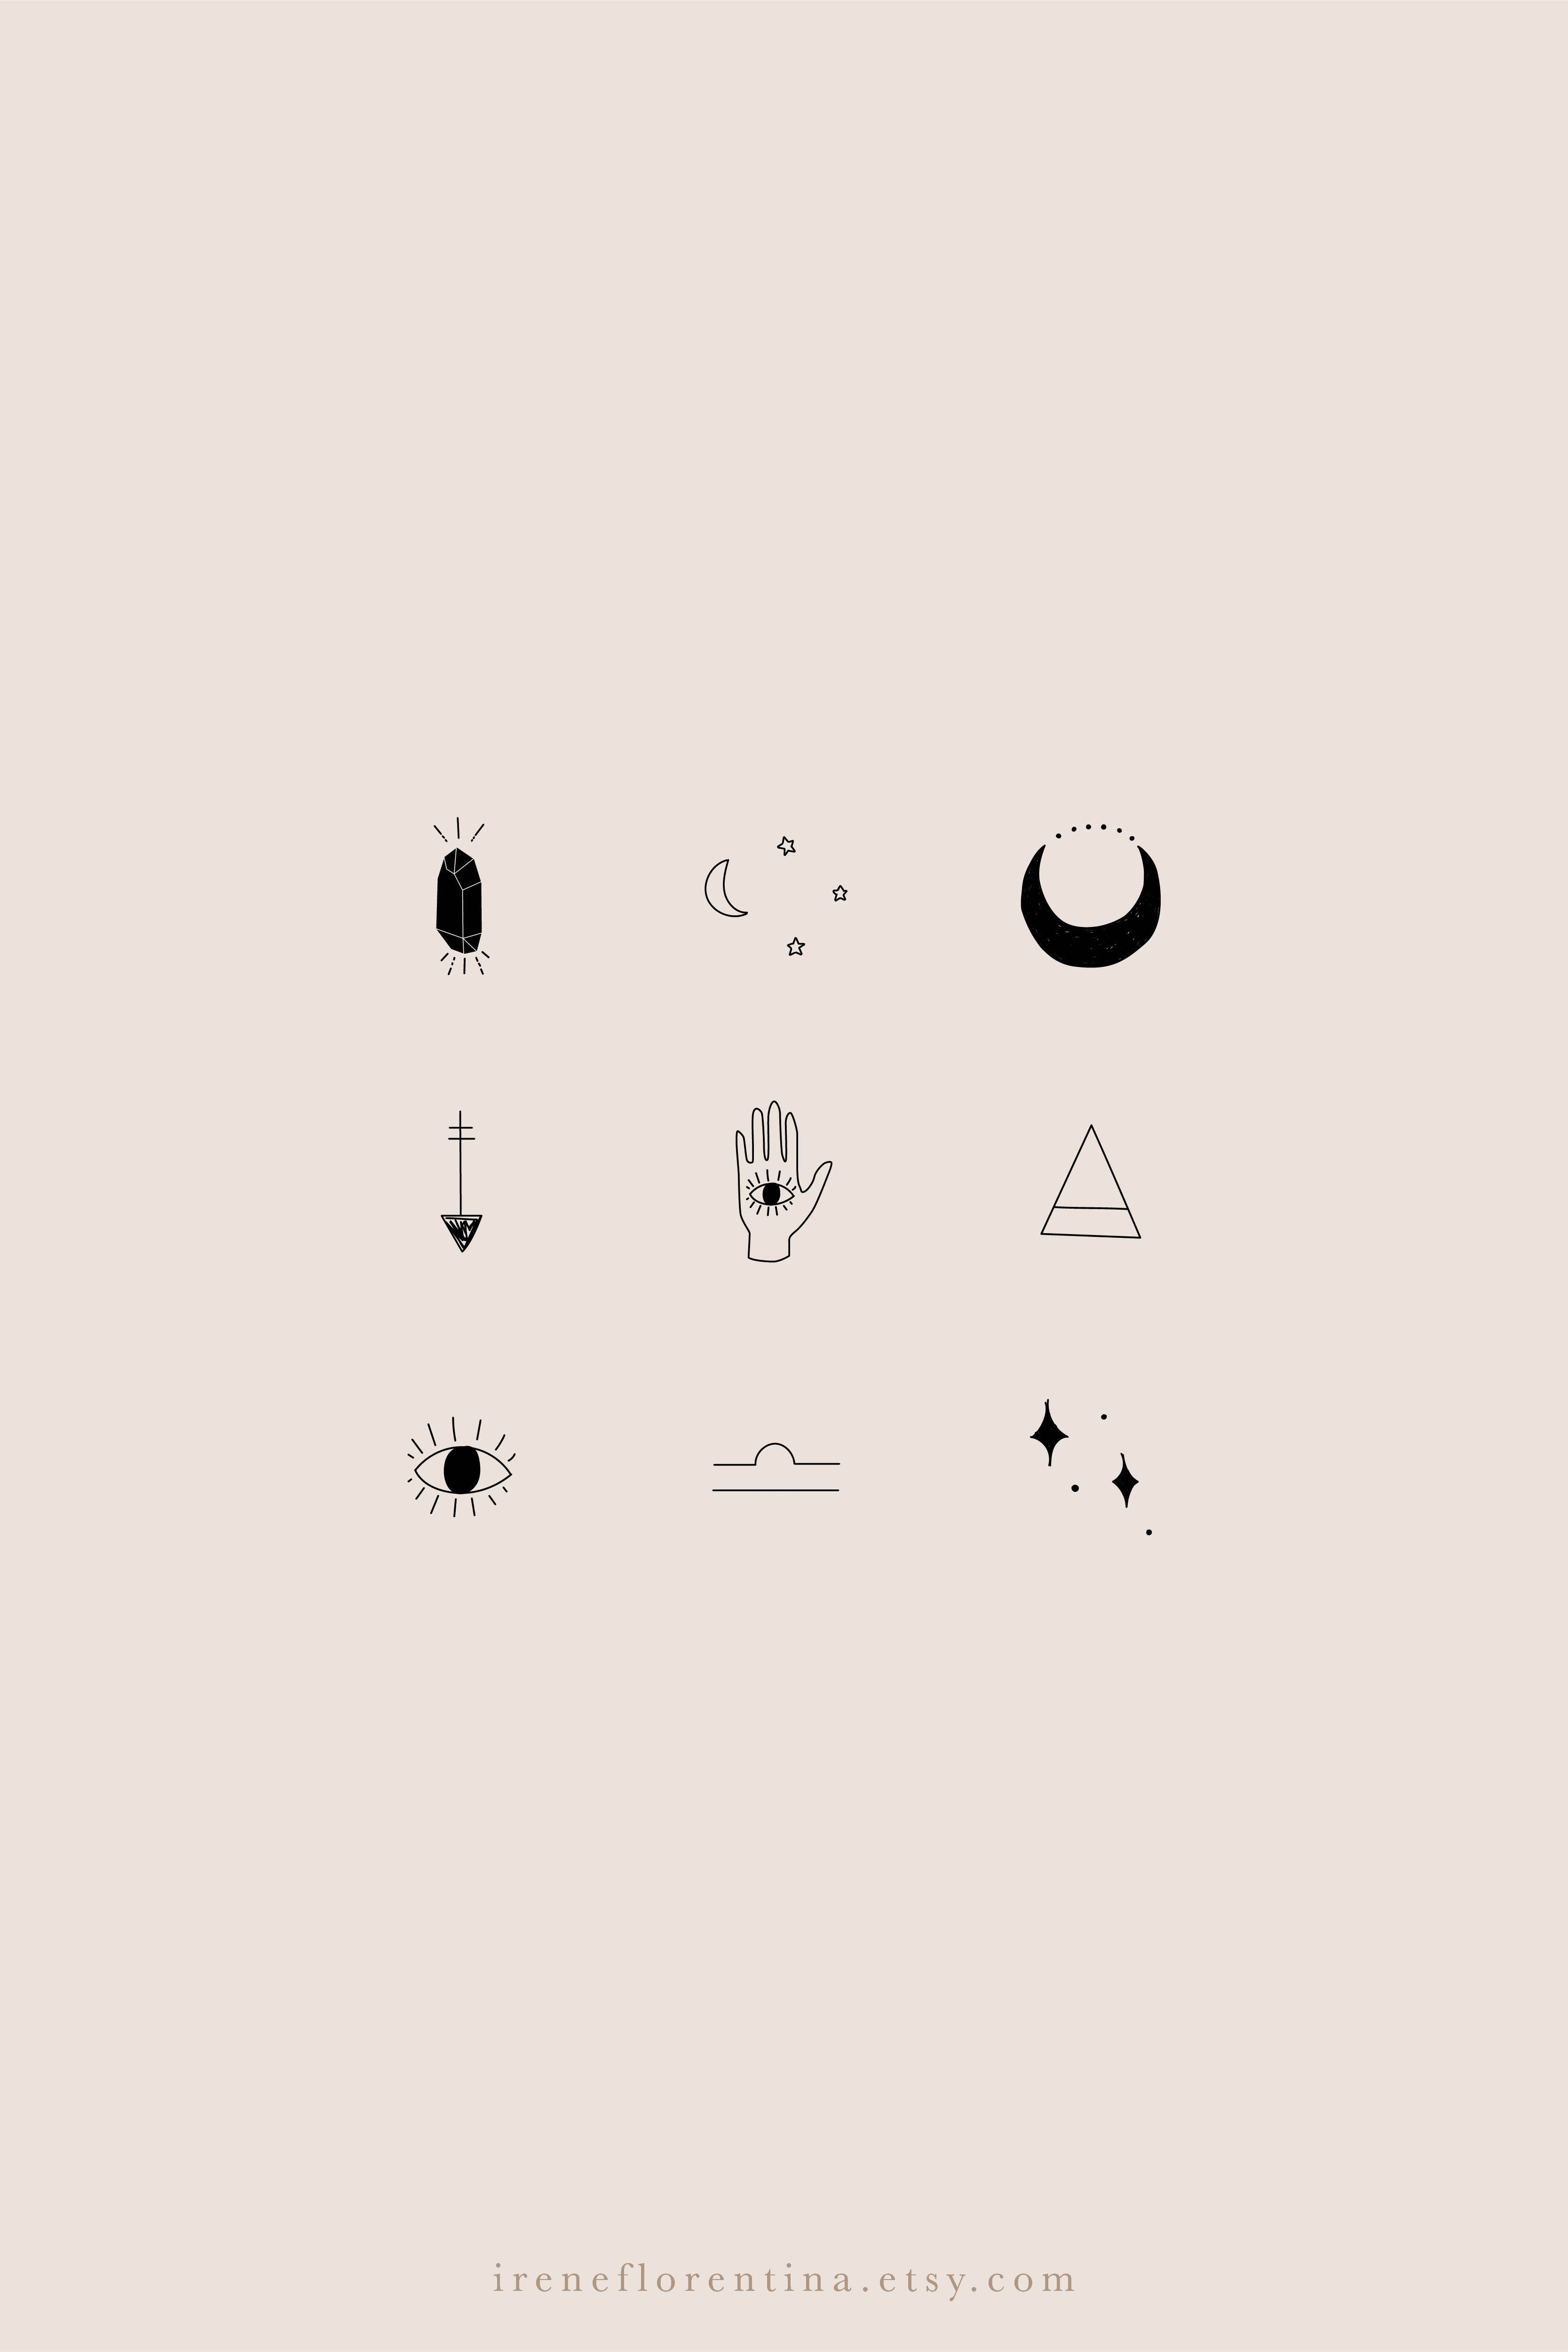 Black & Gray Instagram Story Highlight Icons Covers Magical for Social Media Kit Templates Lifestyle Magic Witchcraft Alternative